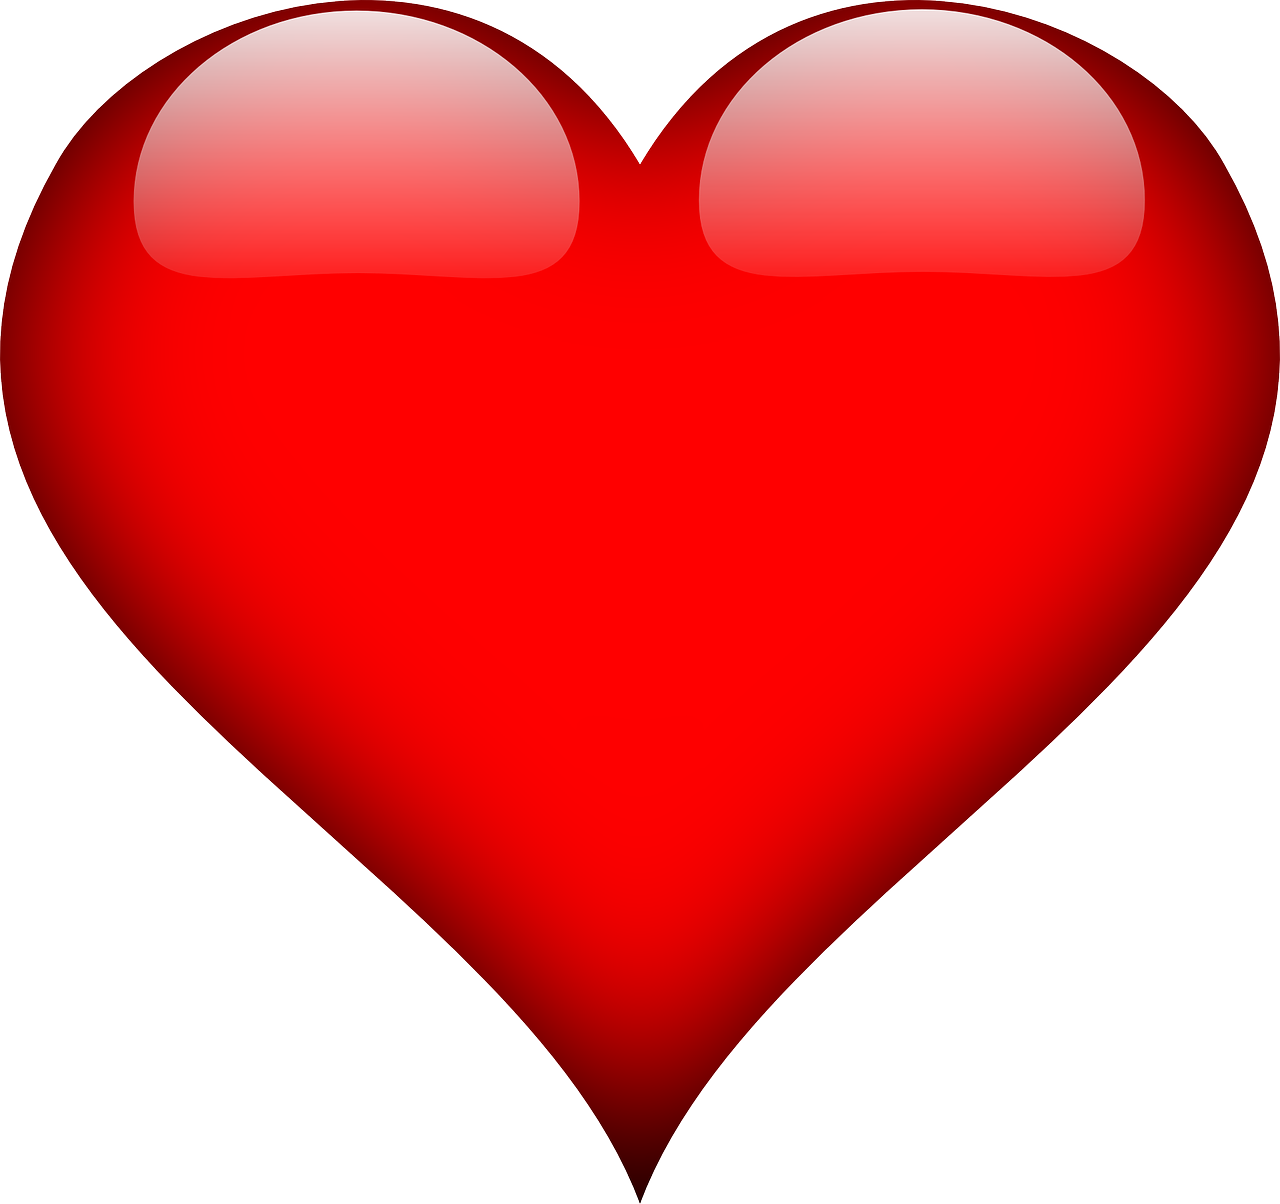 Heart Love Red - Free vector graphic on Pixabay